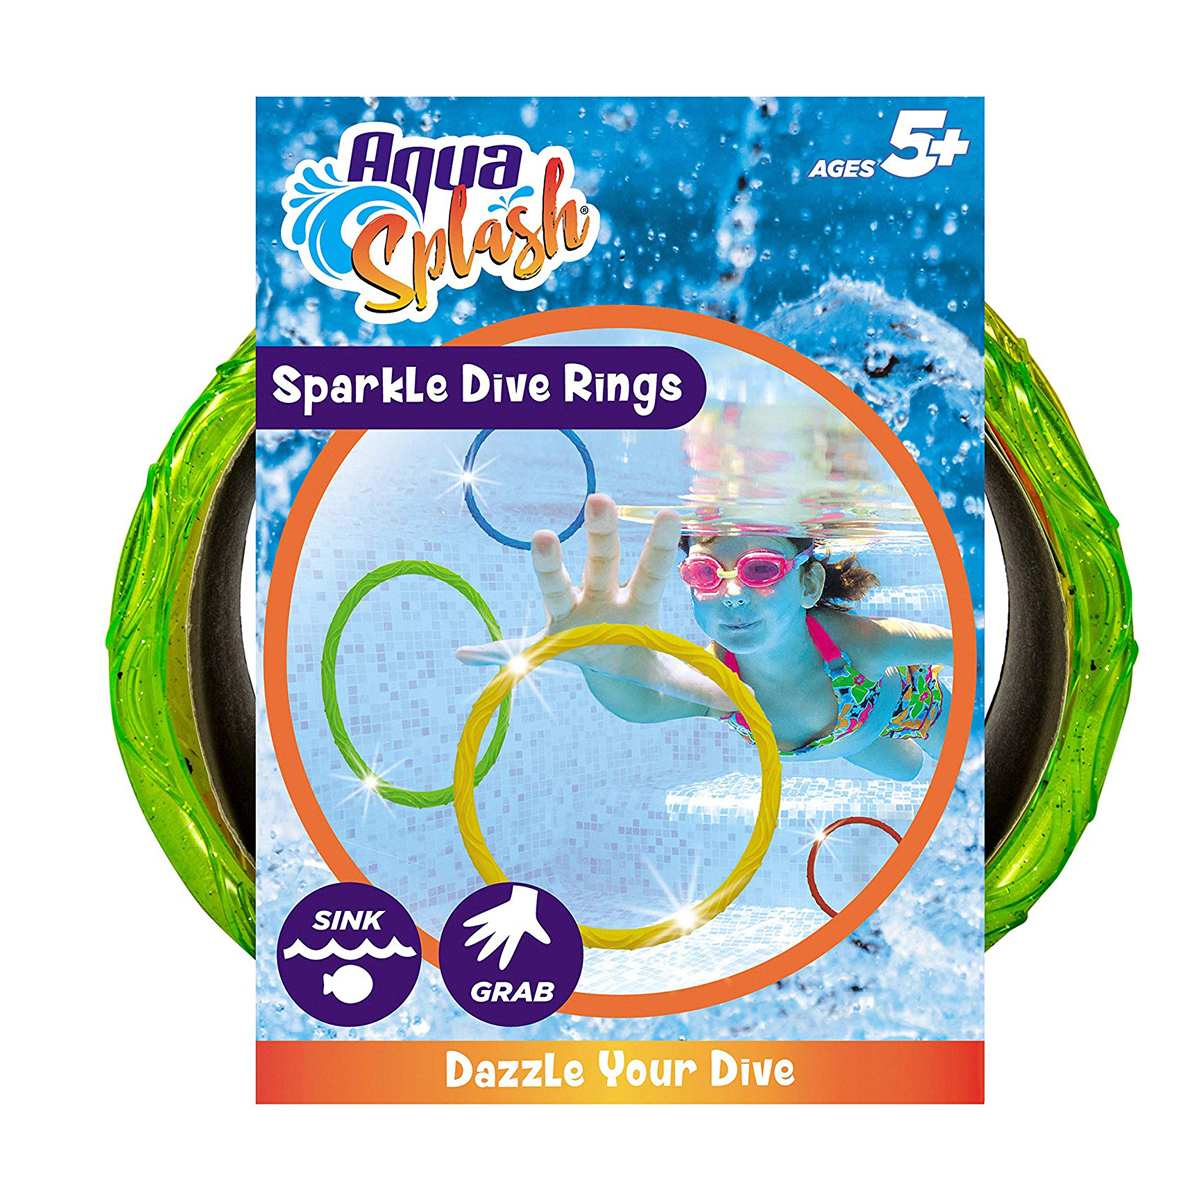 Sparkly Dive Rings